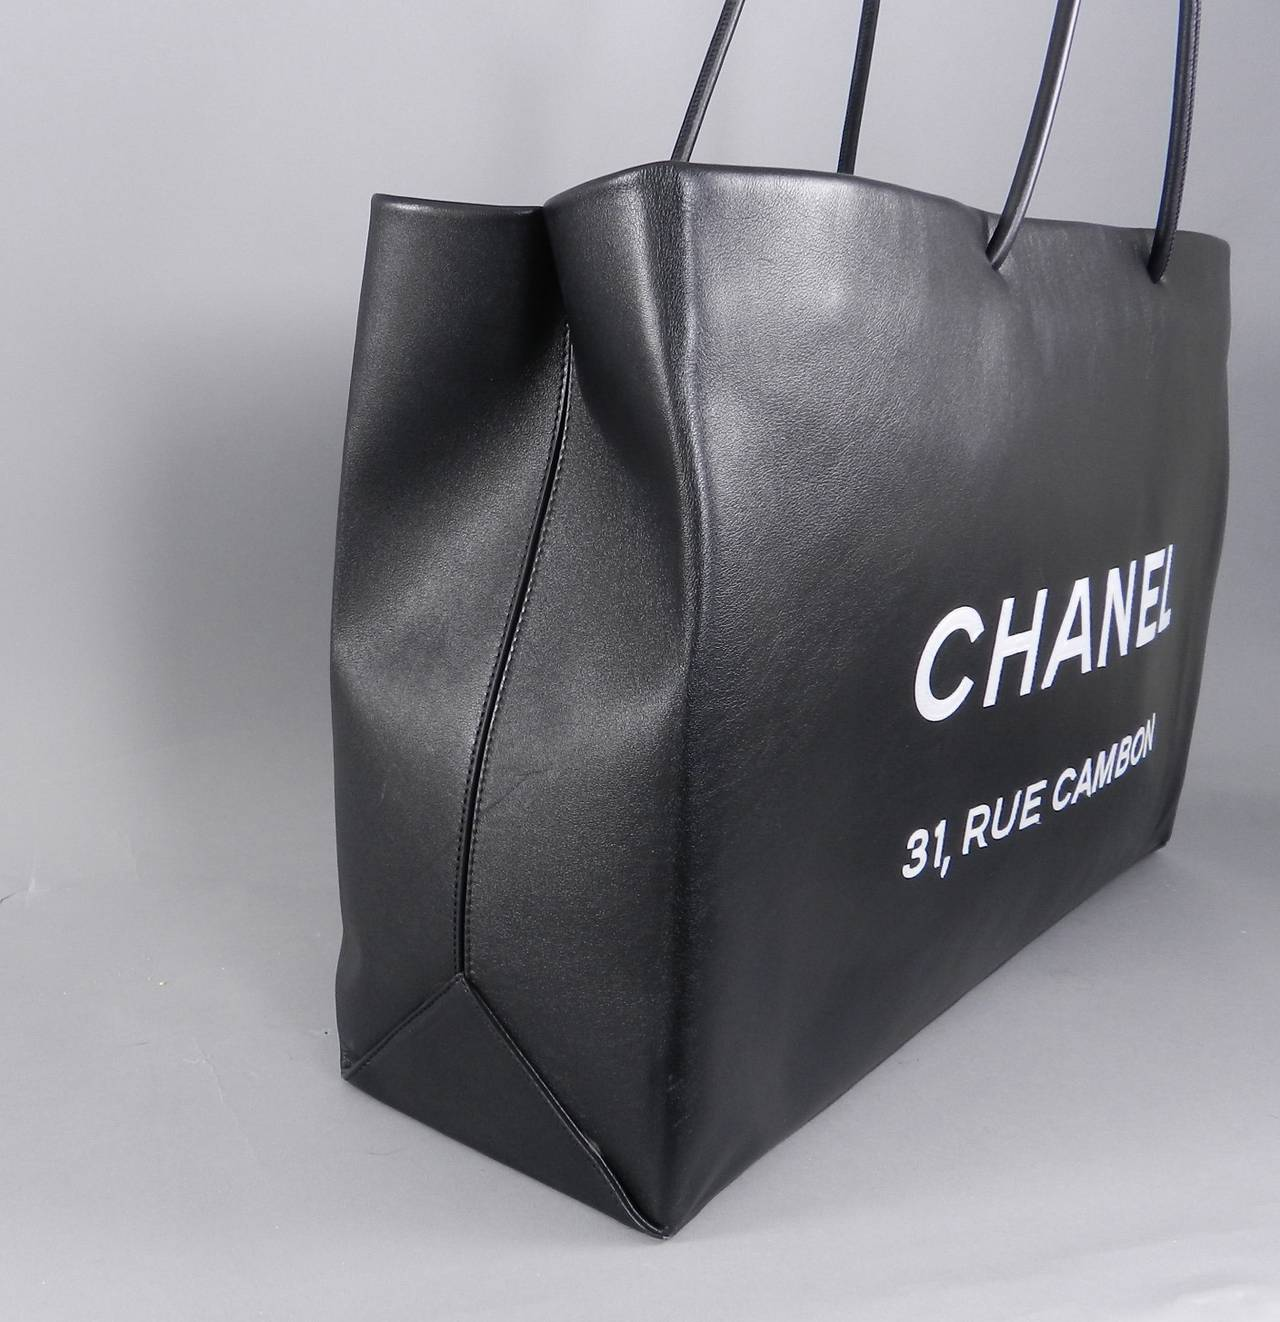 cd97832a3f94 Women's Chanel 09P Runway Black Rue Cambon Leather Shopping Bag Tote For  Sale